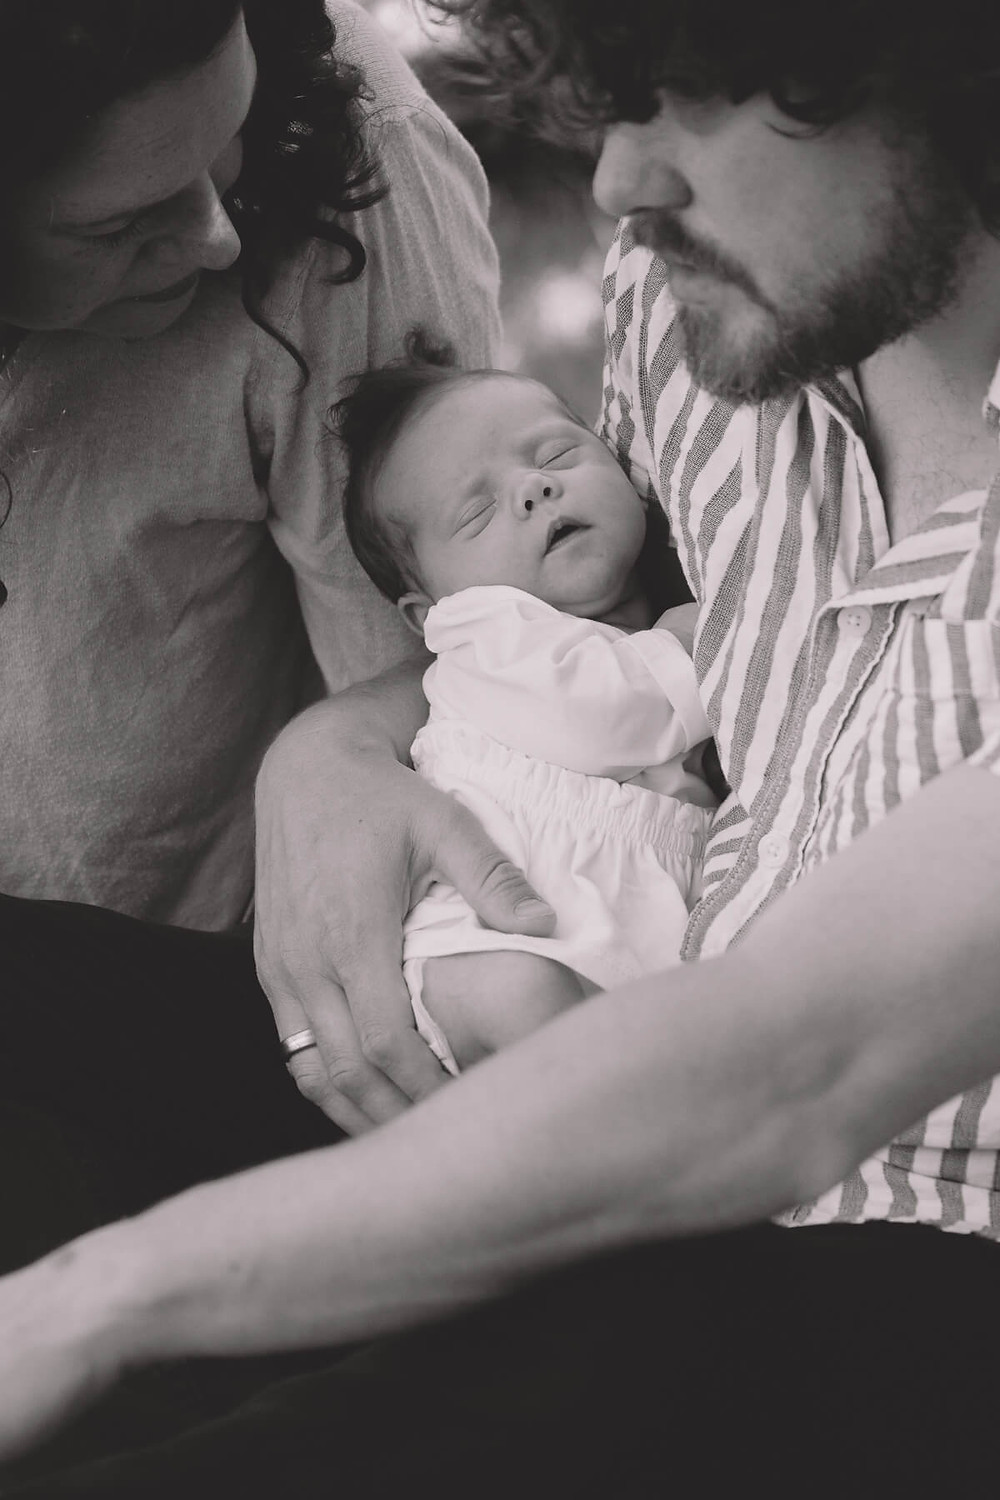 newborn baby sleeping in dads arms black and white